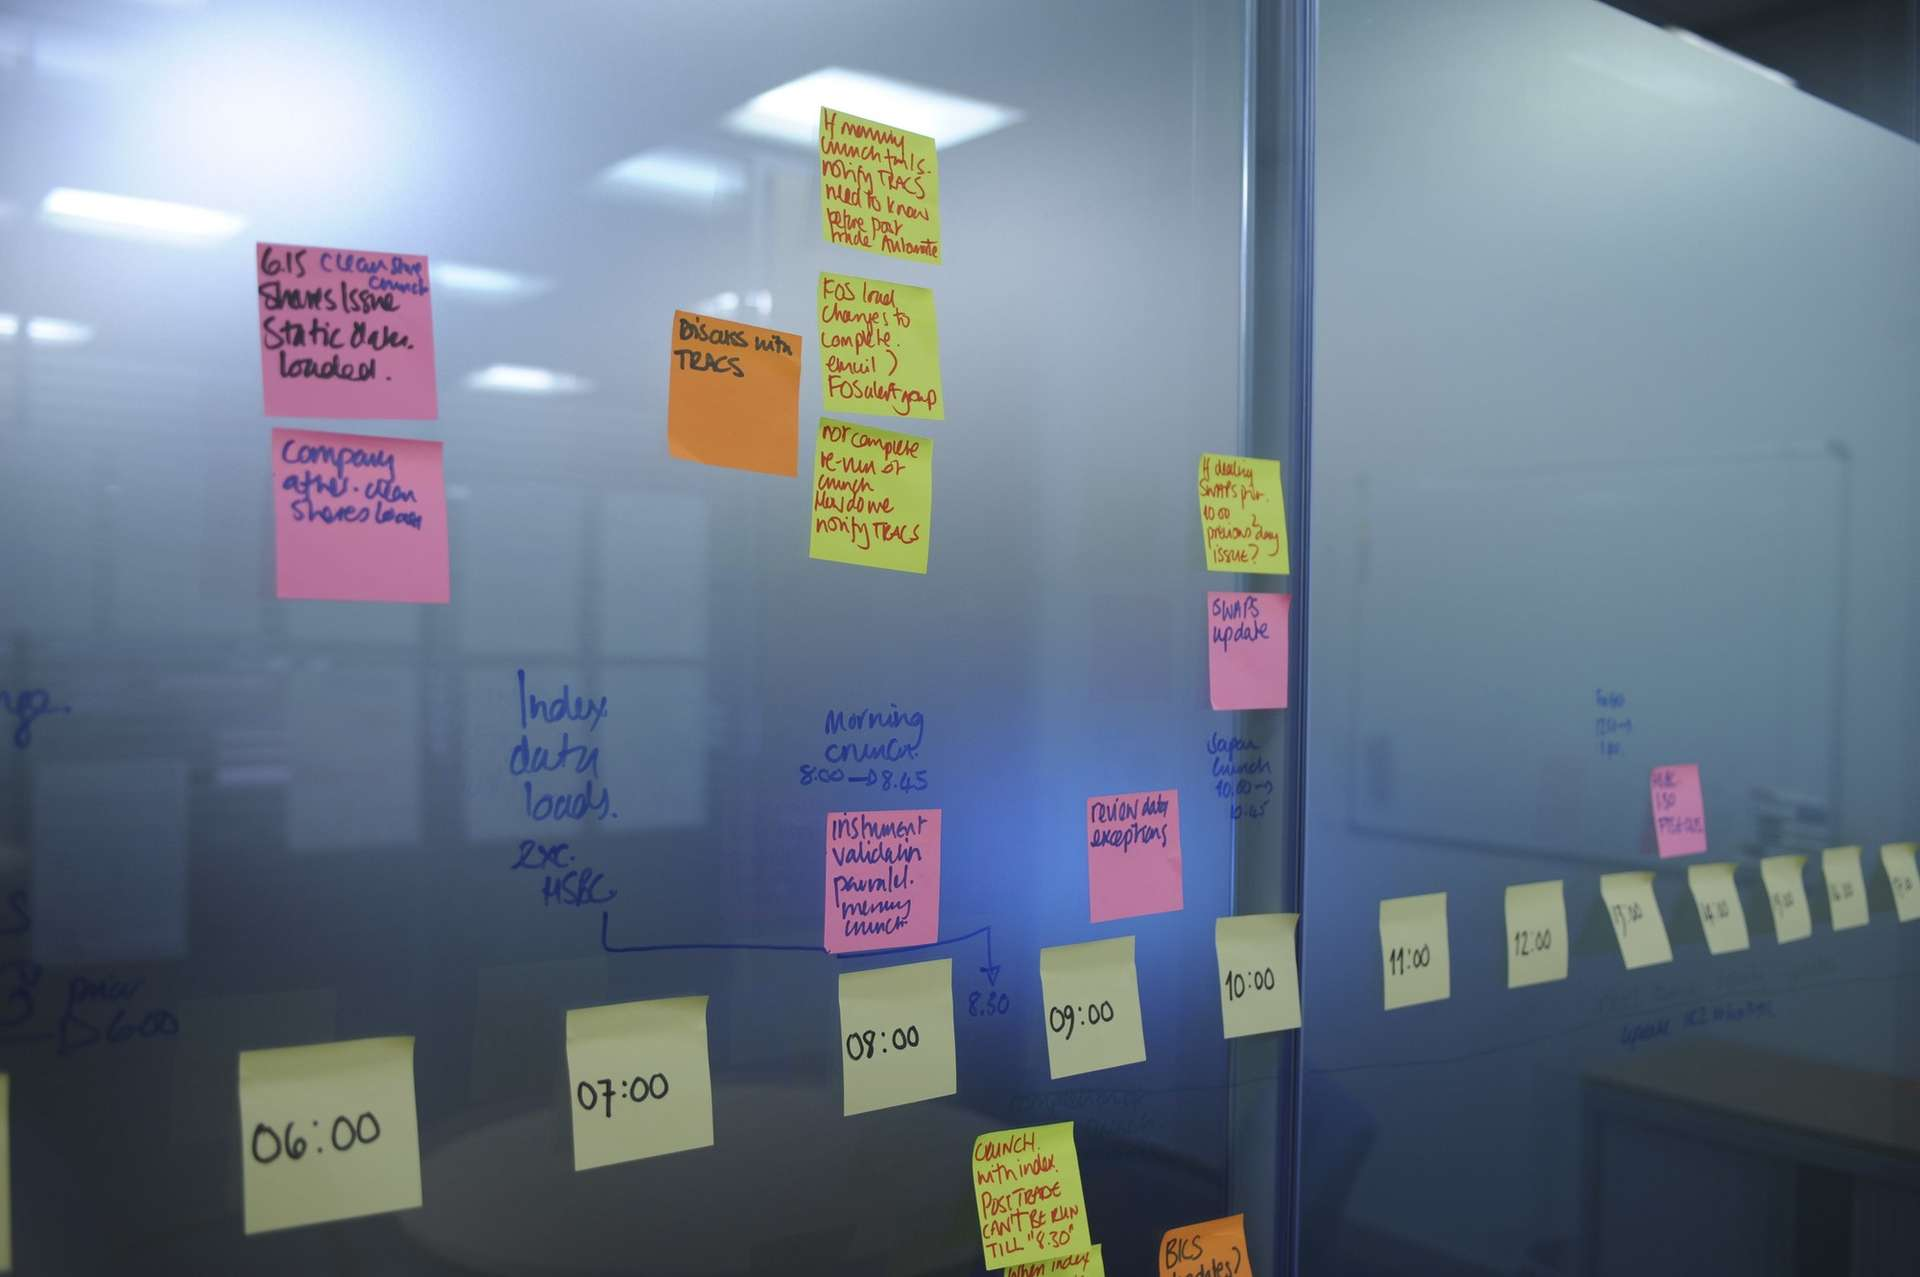 Post-it notes stuck on glass wall